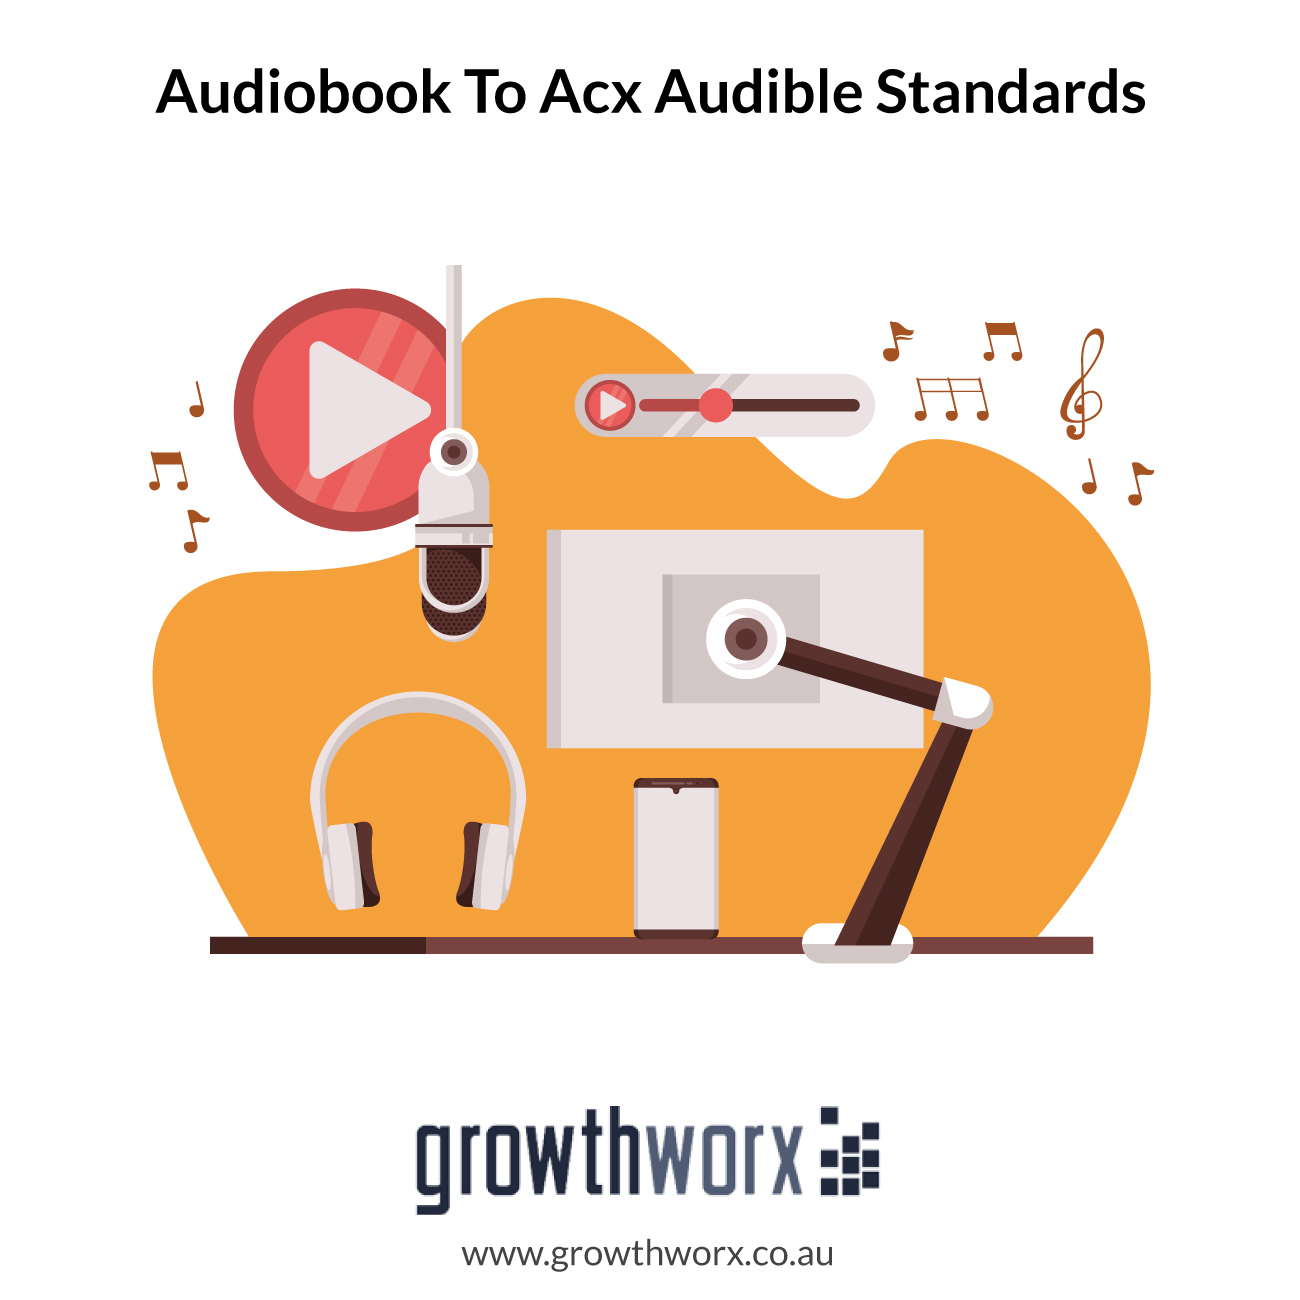 We will narrate your audio book, audiobook to acx audible standards 1